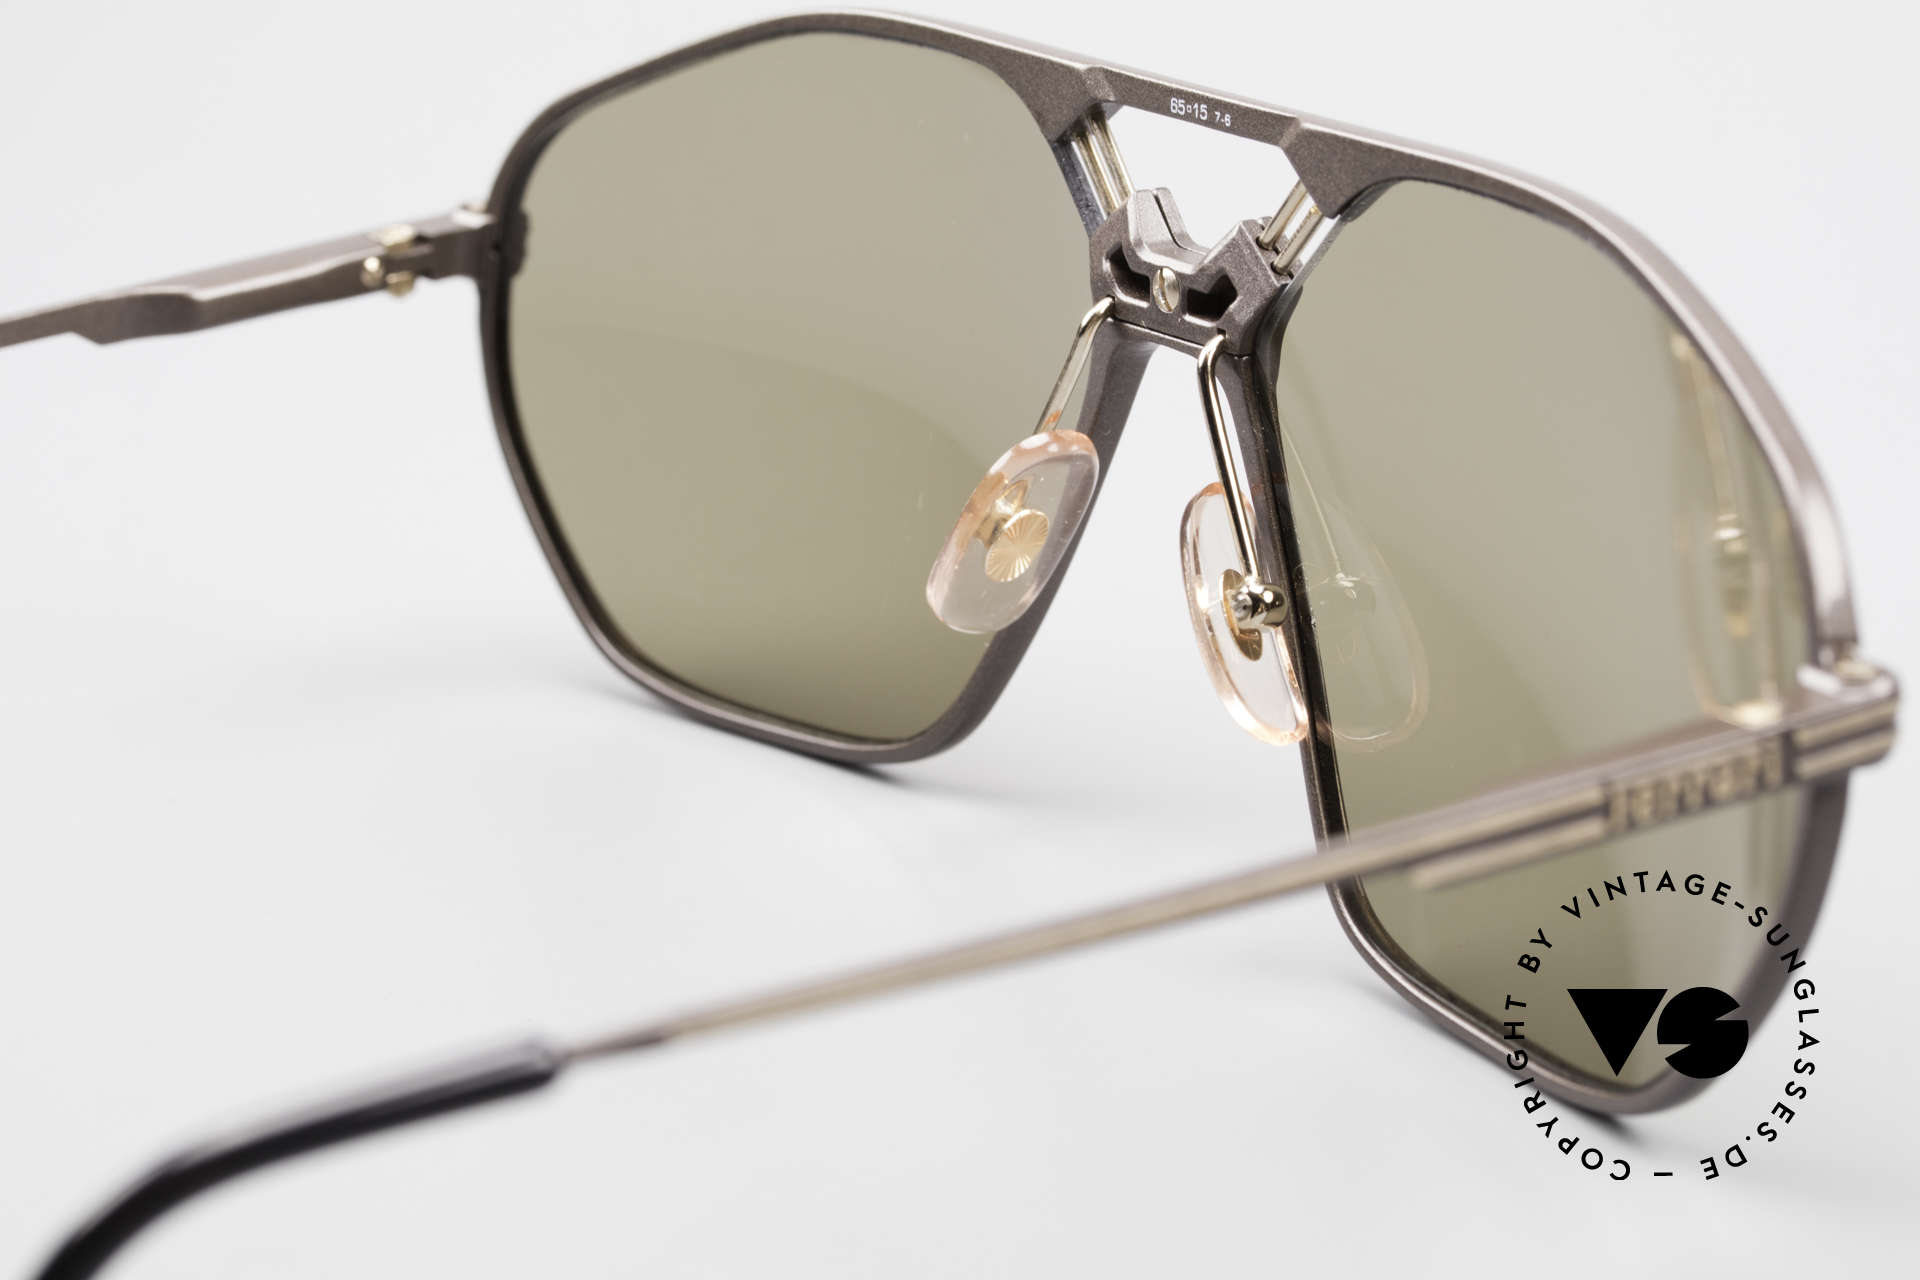 Ferrari F22/S Men's Rare Vintage XL Shades, top-notch quality; XL size 65-15, 140, F22/S, col 700, Made for Men